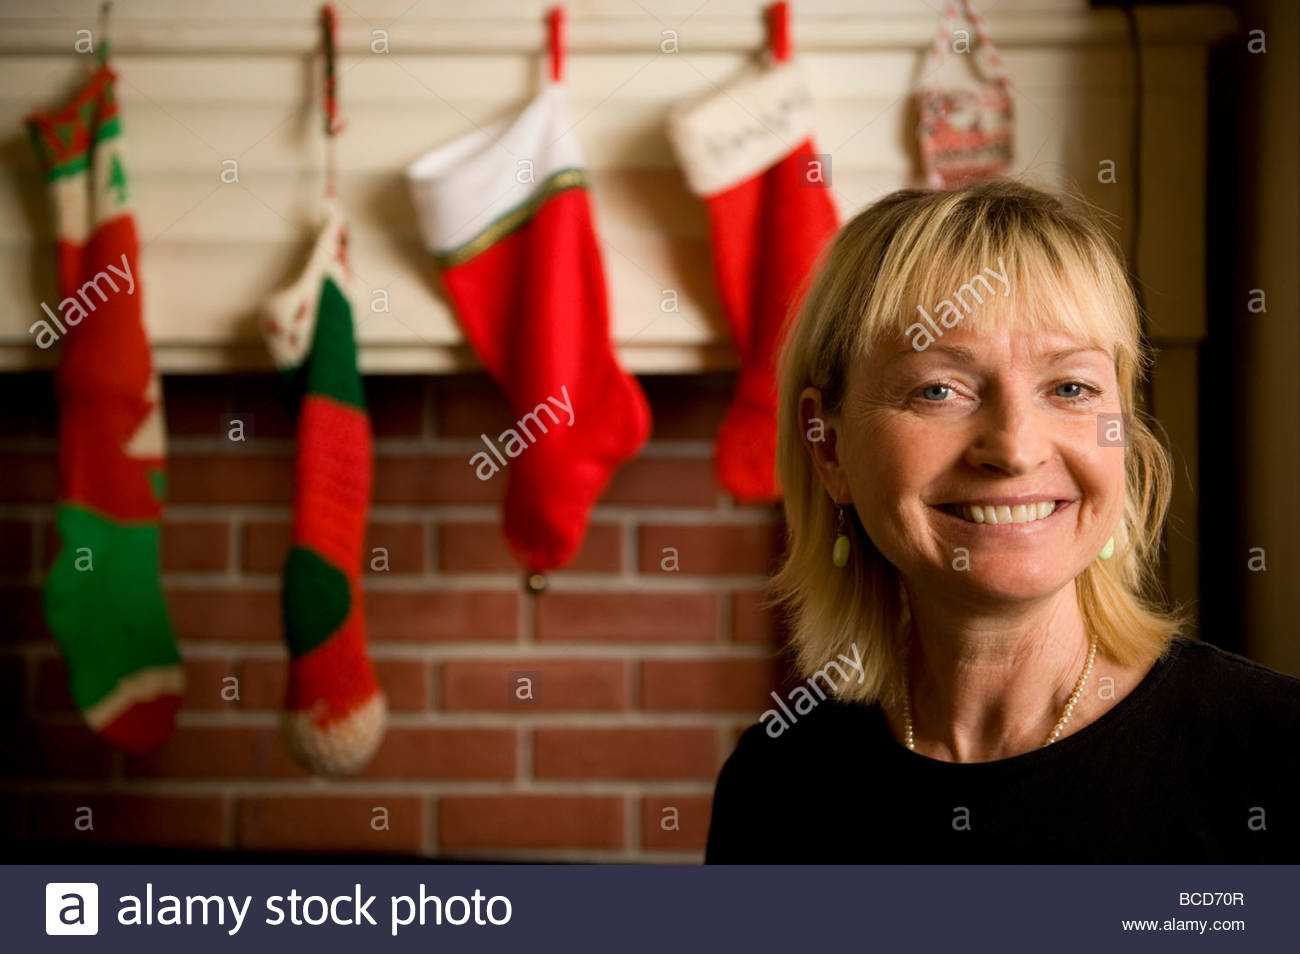 A woman during Christmastime. - Stock Image